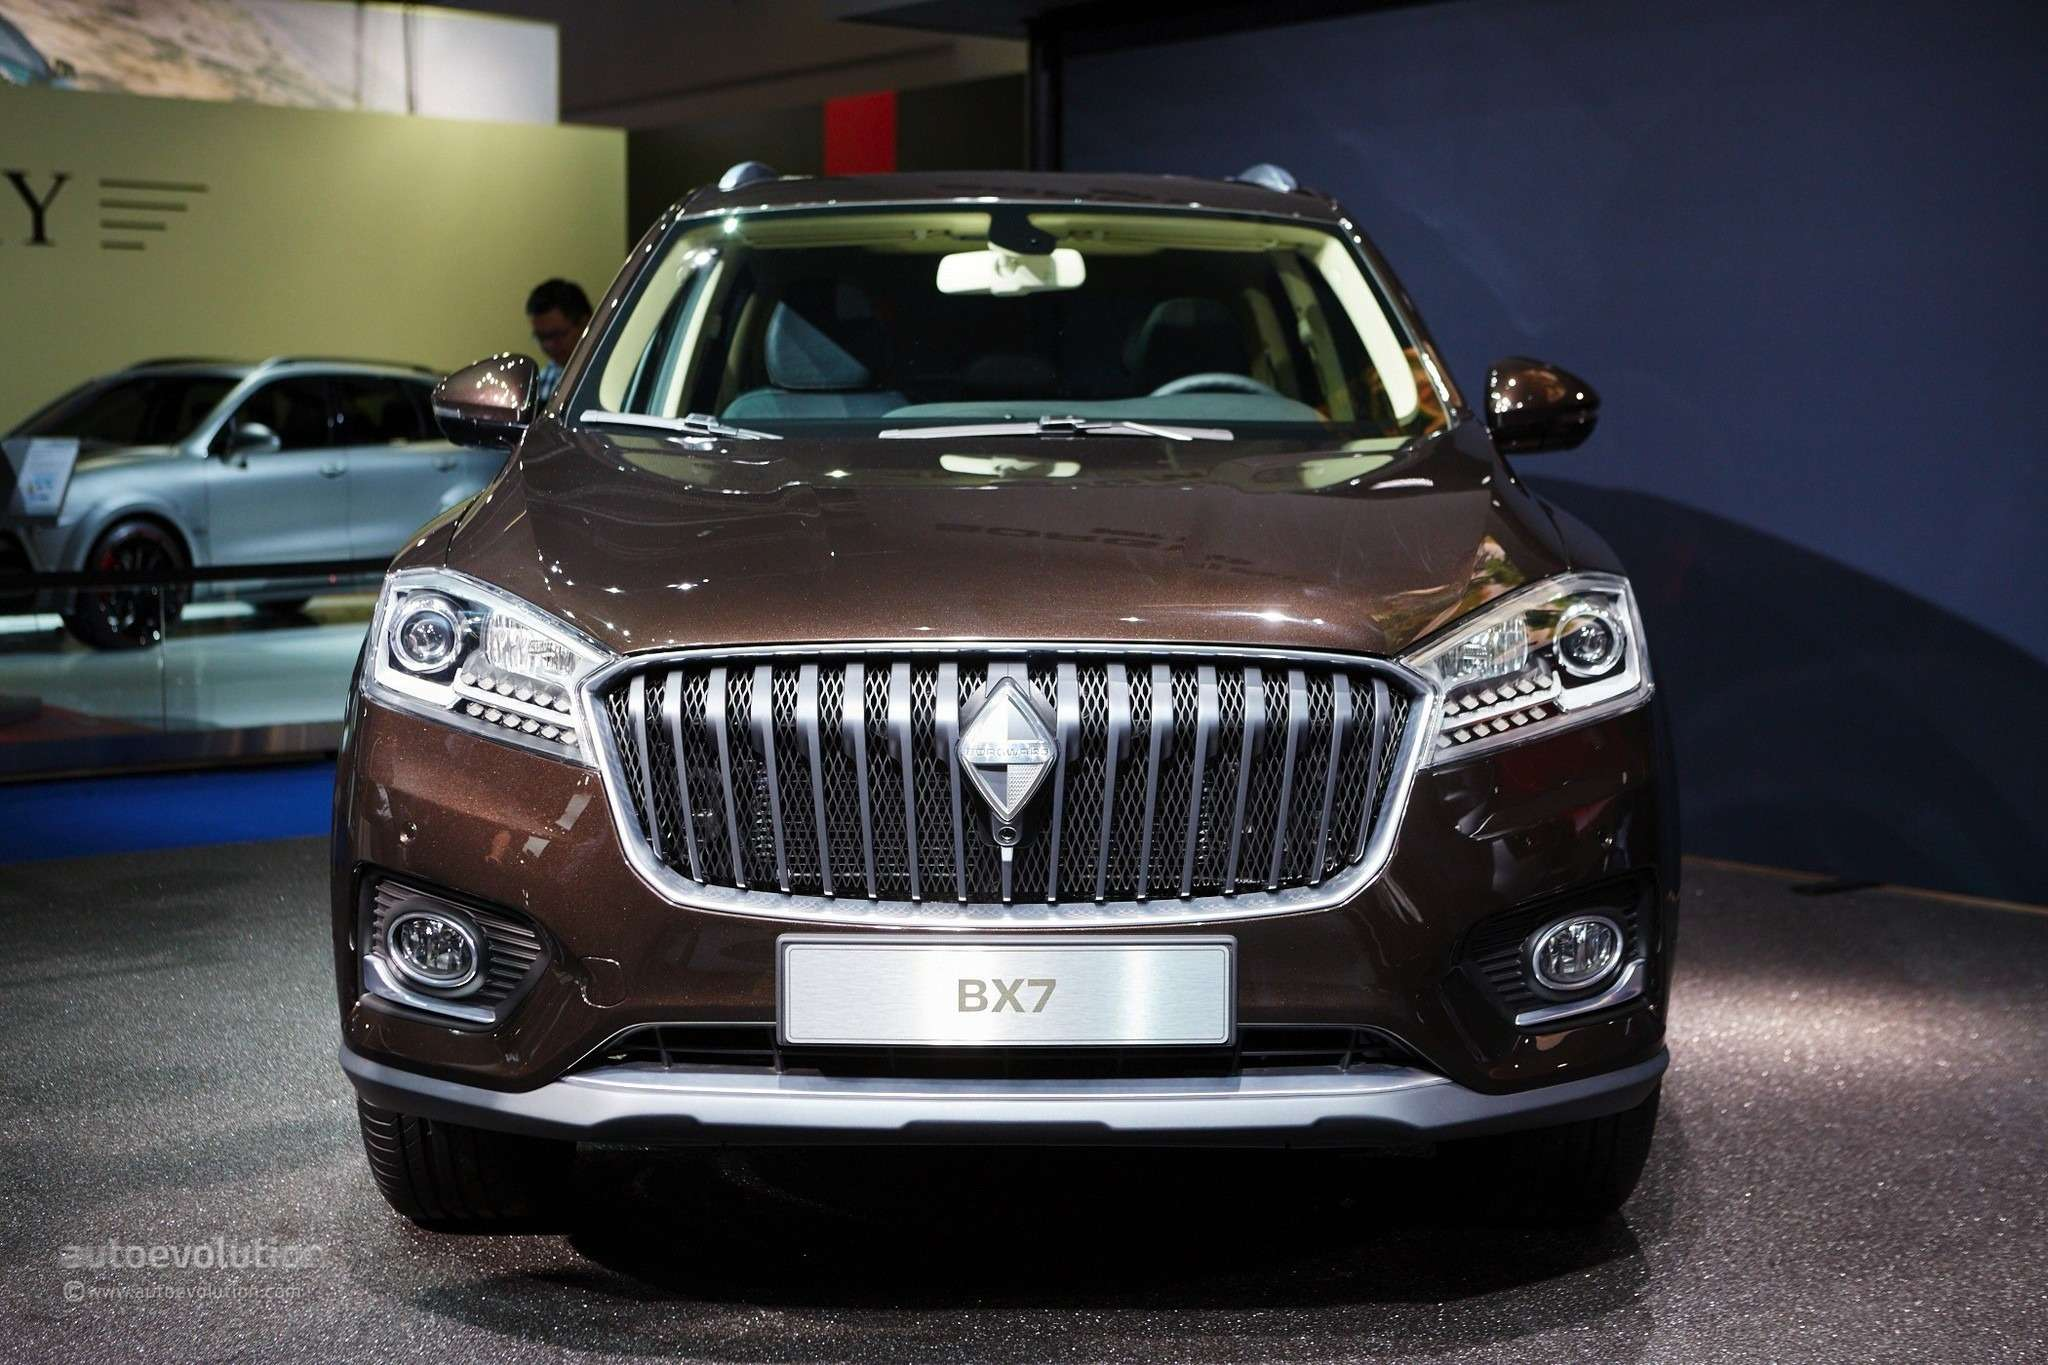 borgward-is-officially-back-with-its-bx7-suv-in-frankfurt-live-photos_15